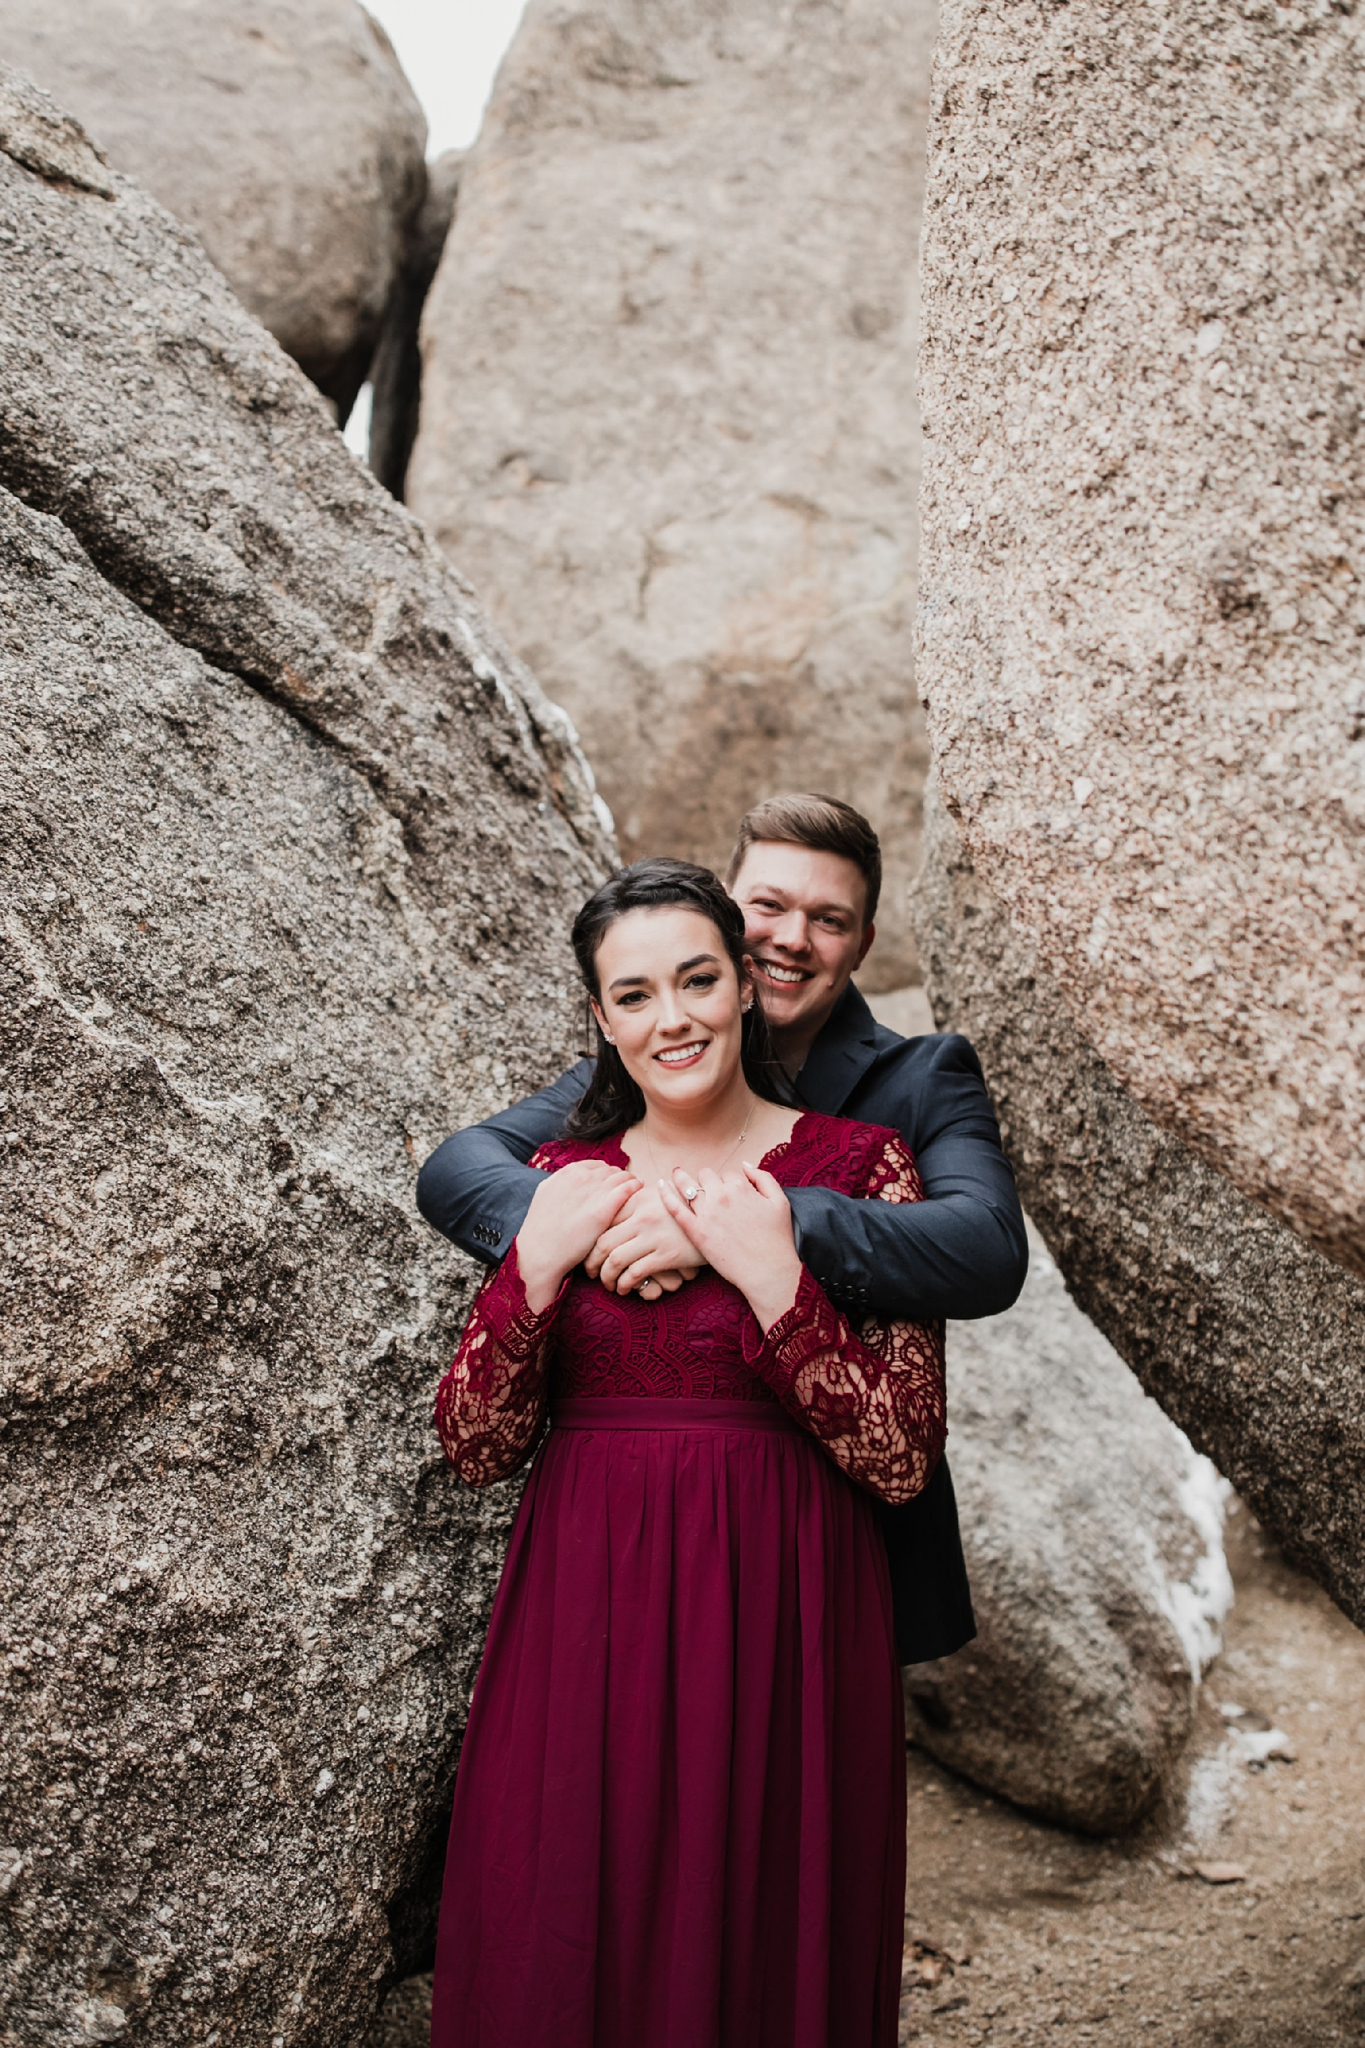 Alicia+lucia+photography+-+albuquerque+wedding+photographer+-+santa+fe+wedding+photography+-+new+mexico+wedding+photographer+-+new+mexico+wedding+-+engagement+-+albuquerque+engagement+-+winter+engagement+-+hyatt+tamaya+wedding_0002.jpg